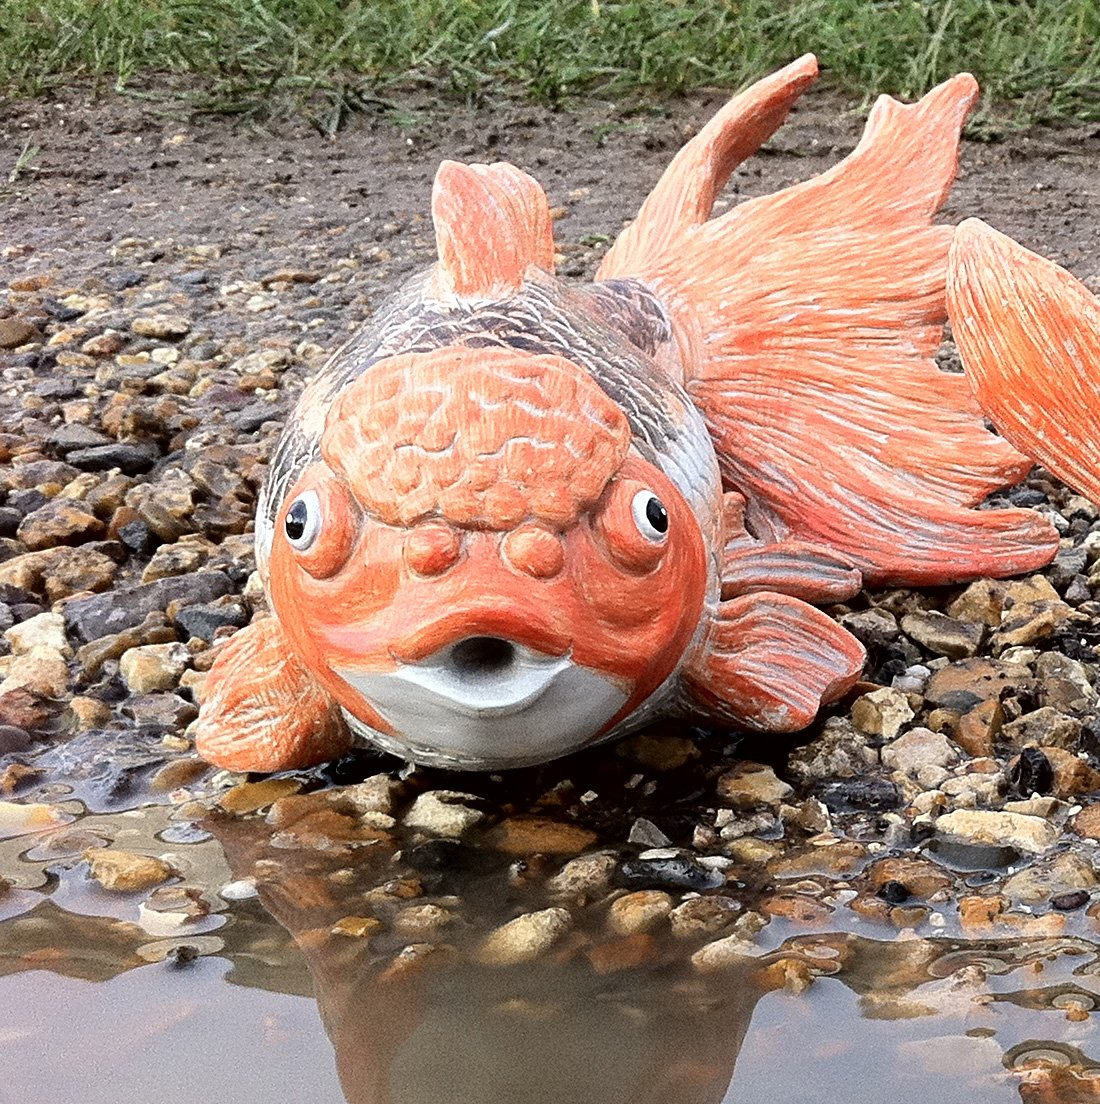 Fish lawn ornaments 100 images outdoors design lawn for Koi import el patio